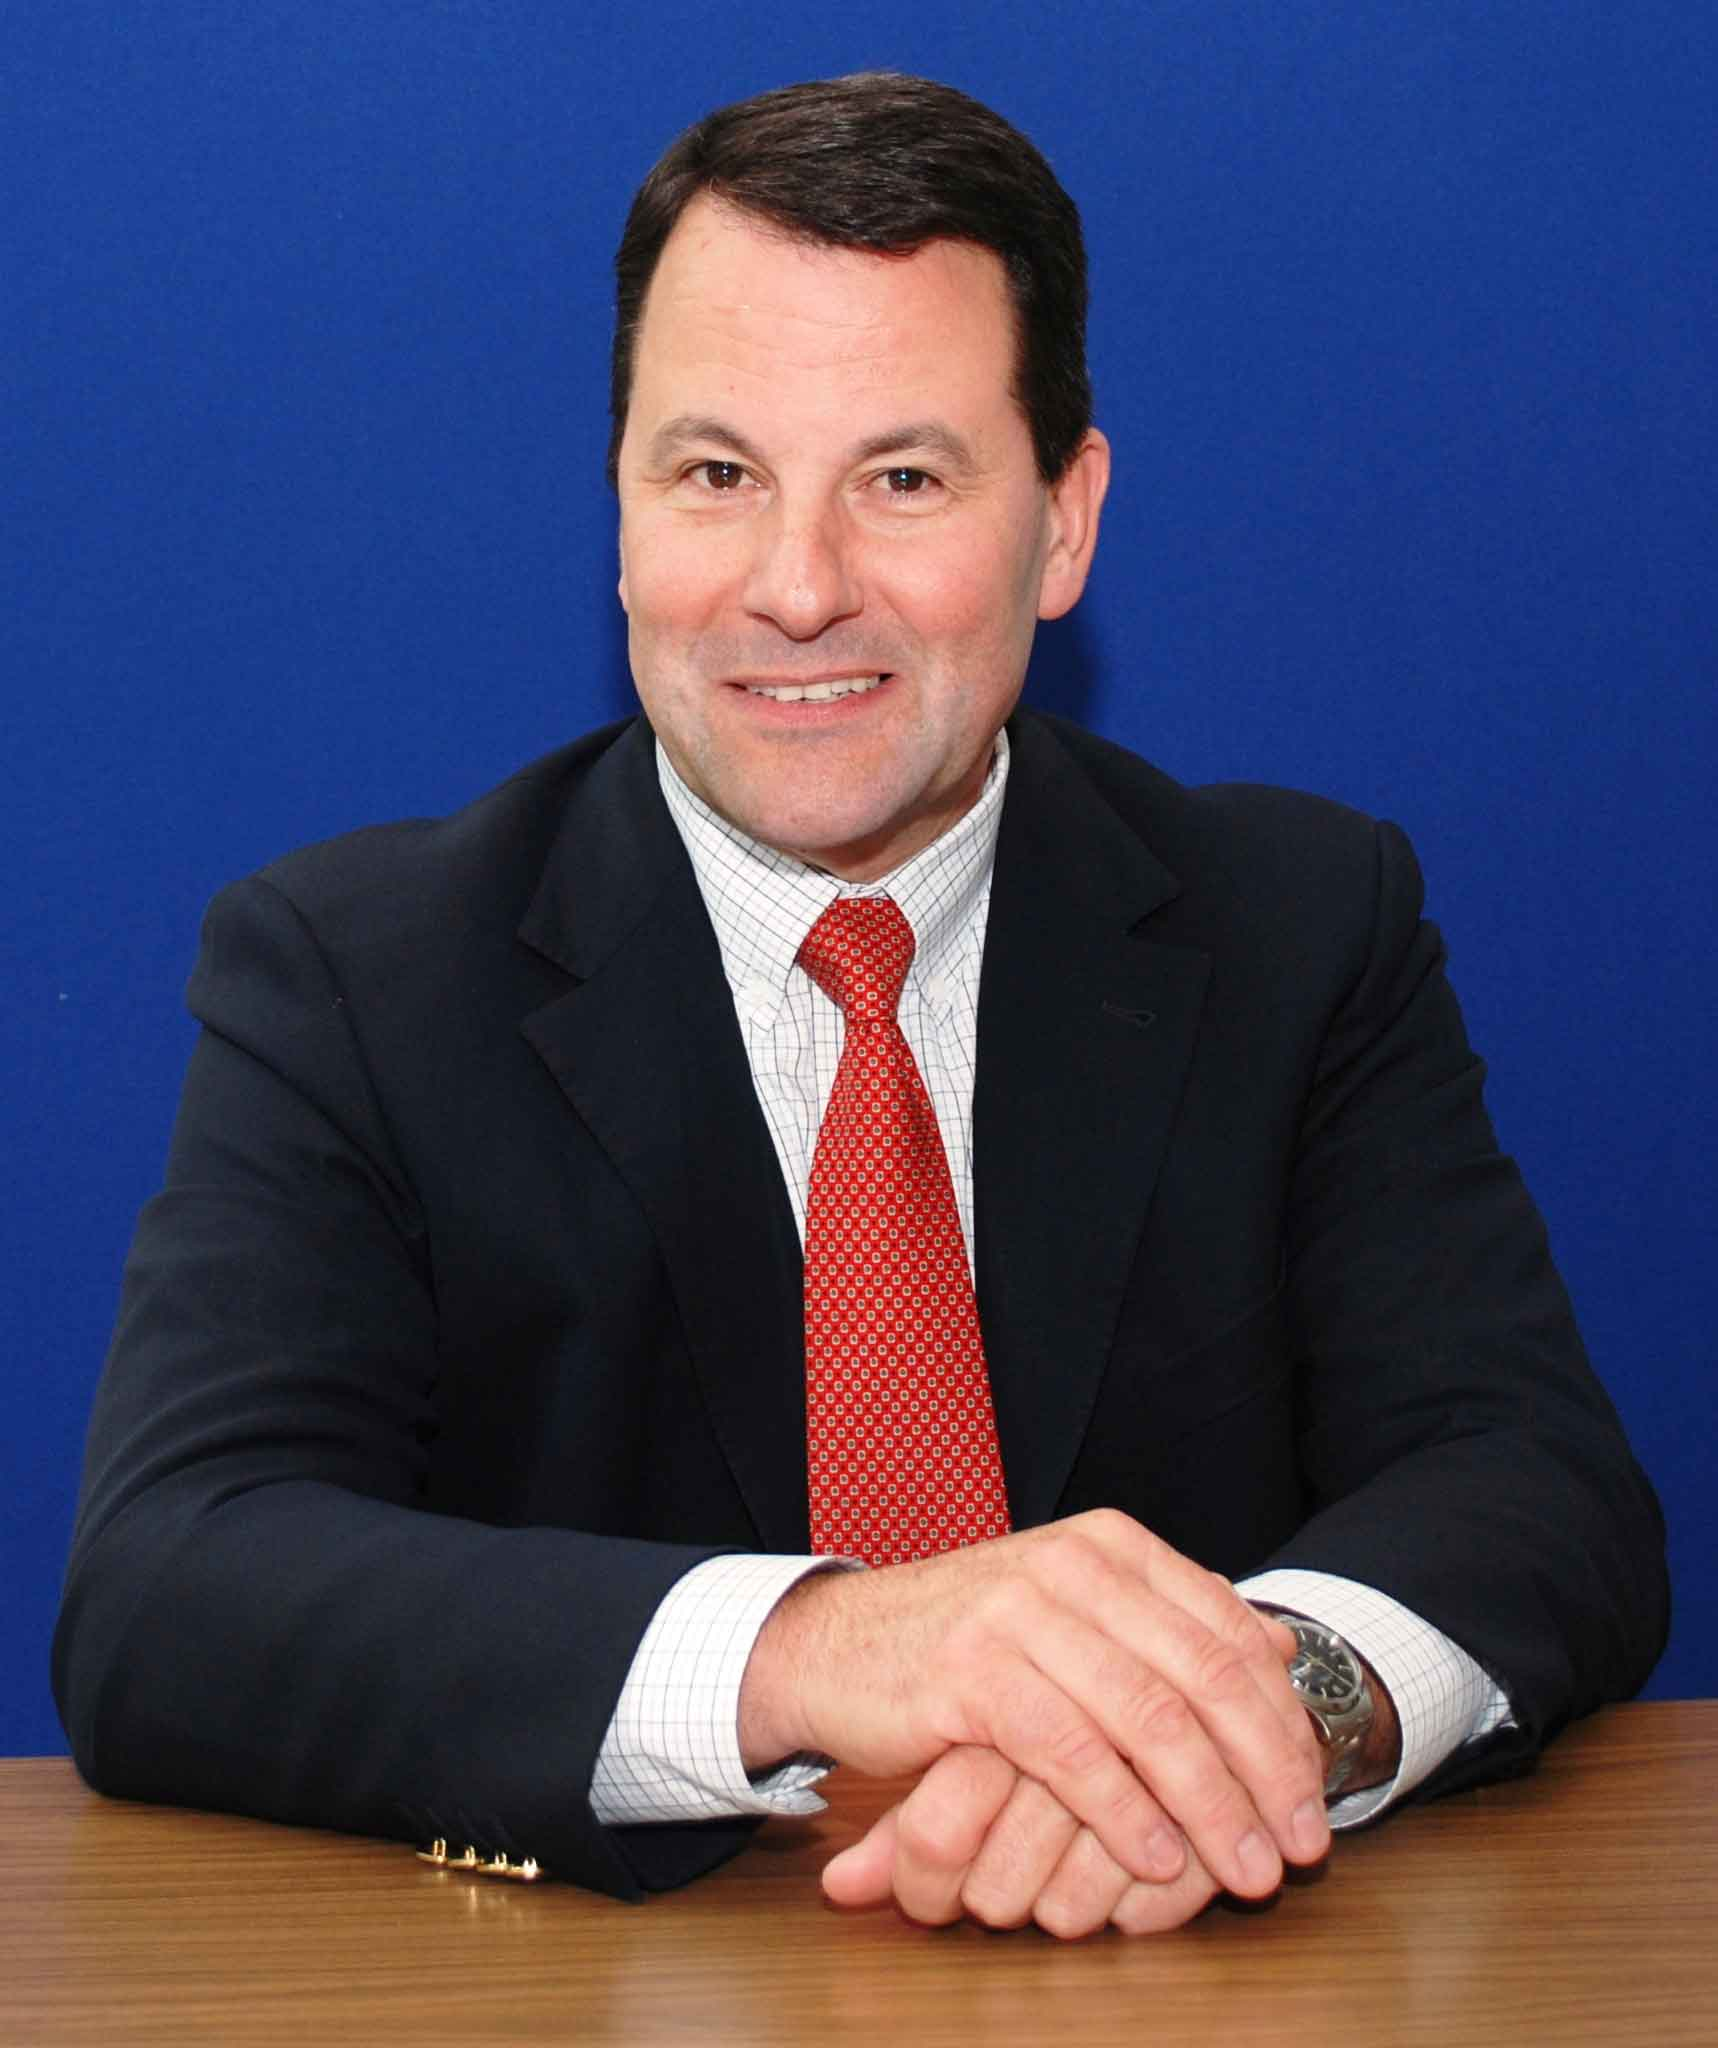 Andreas Kandt is new Managing Director and Director of Sales at BEKUM